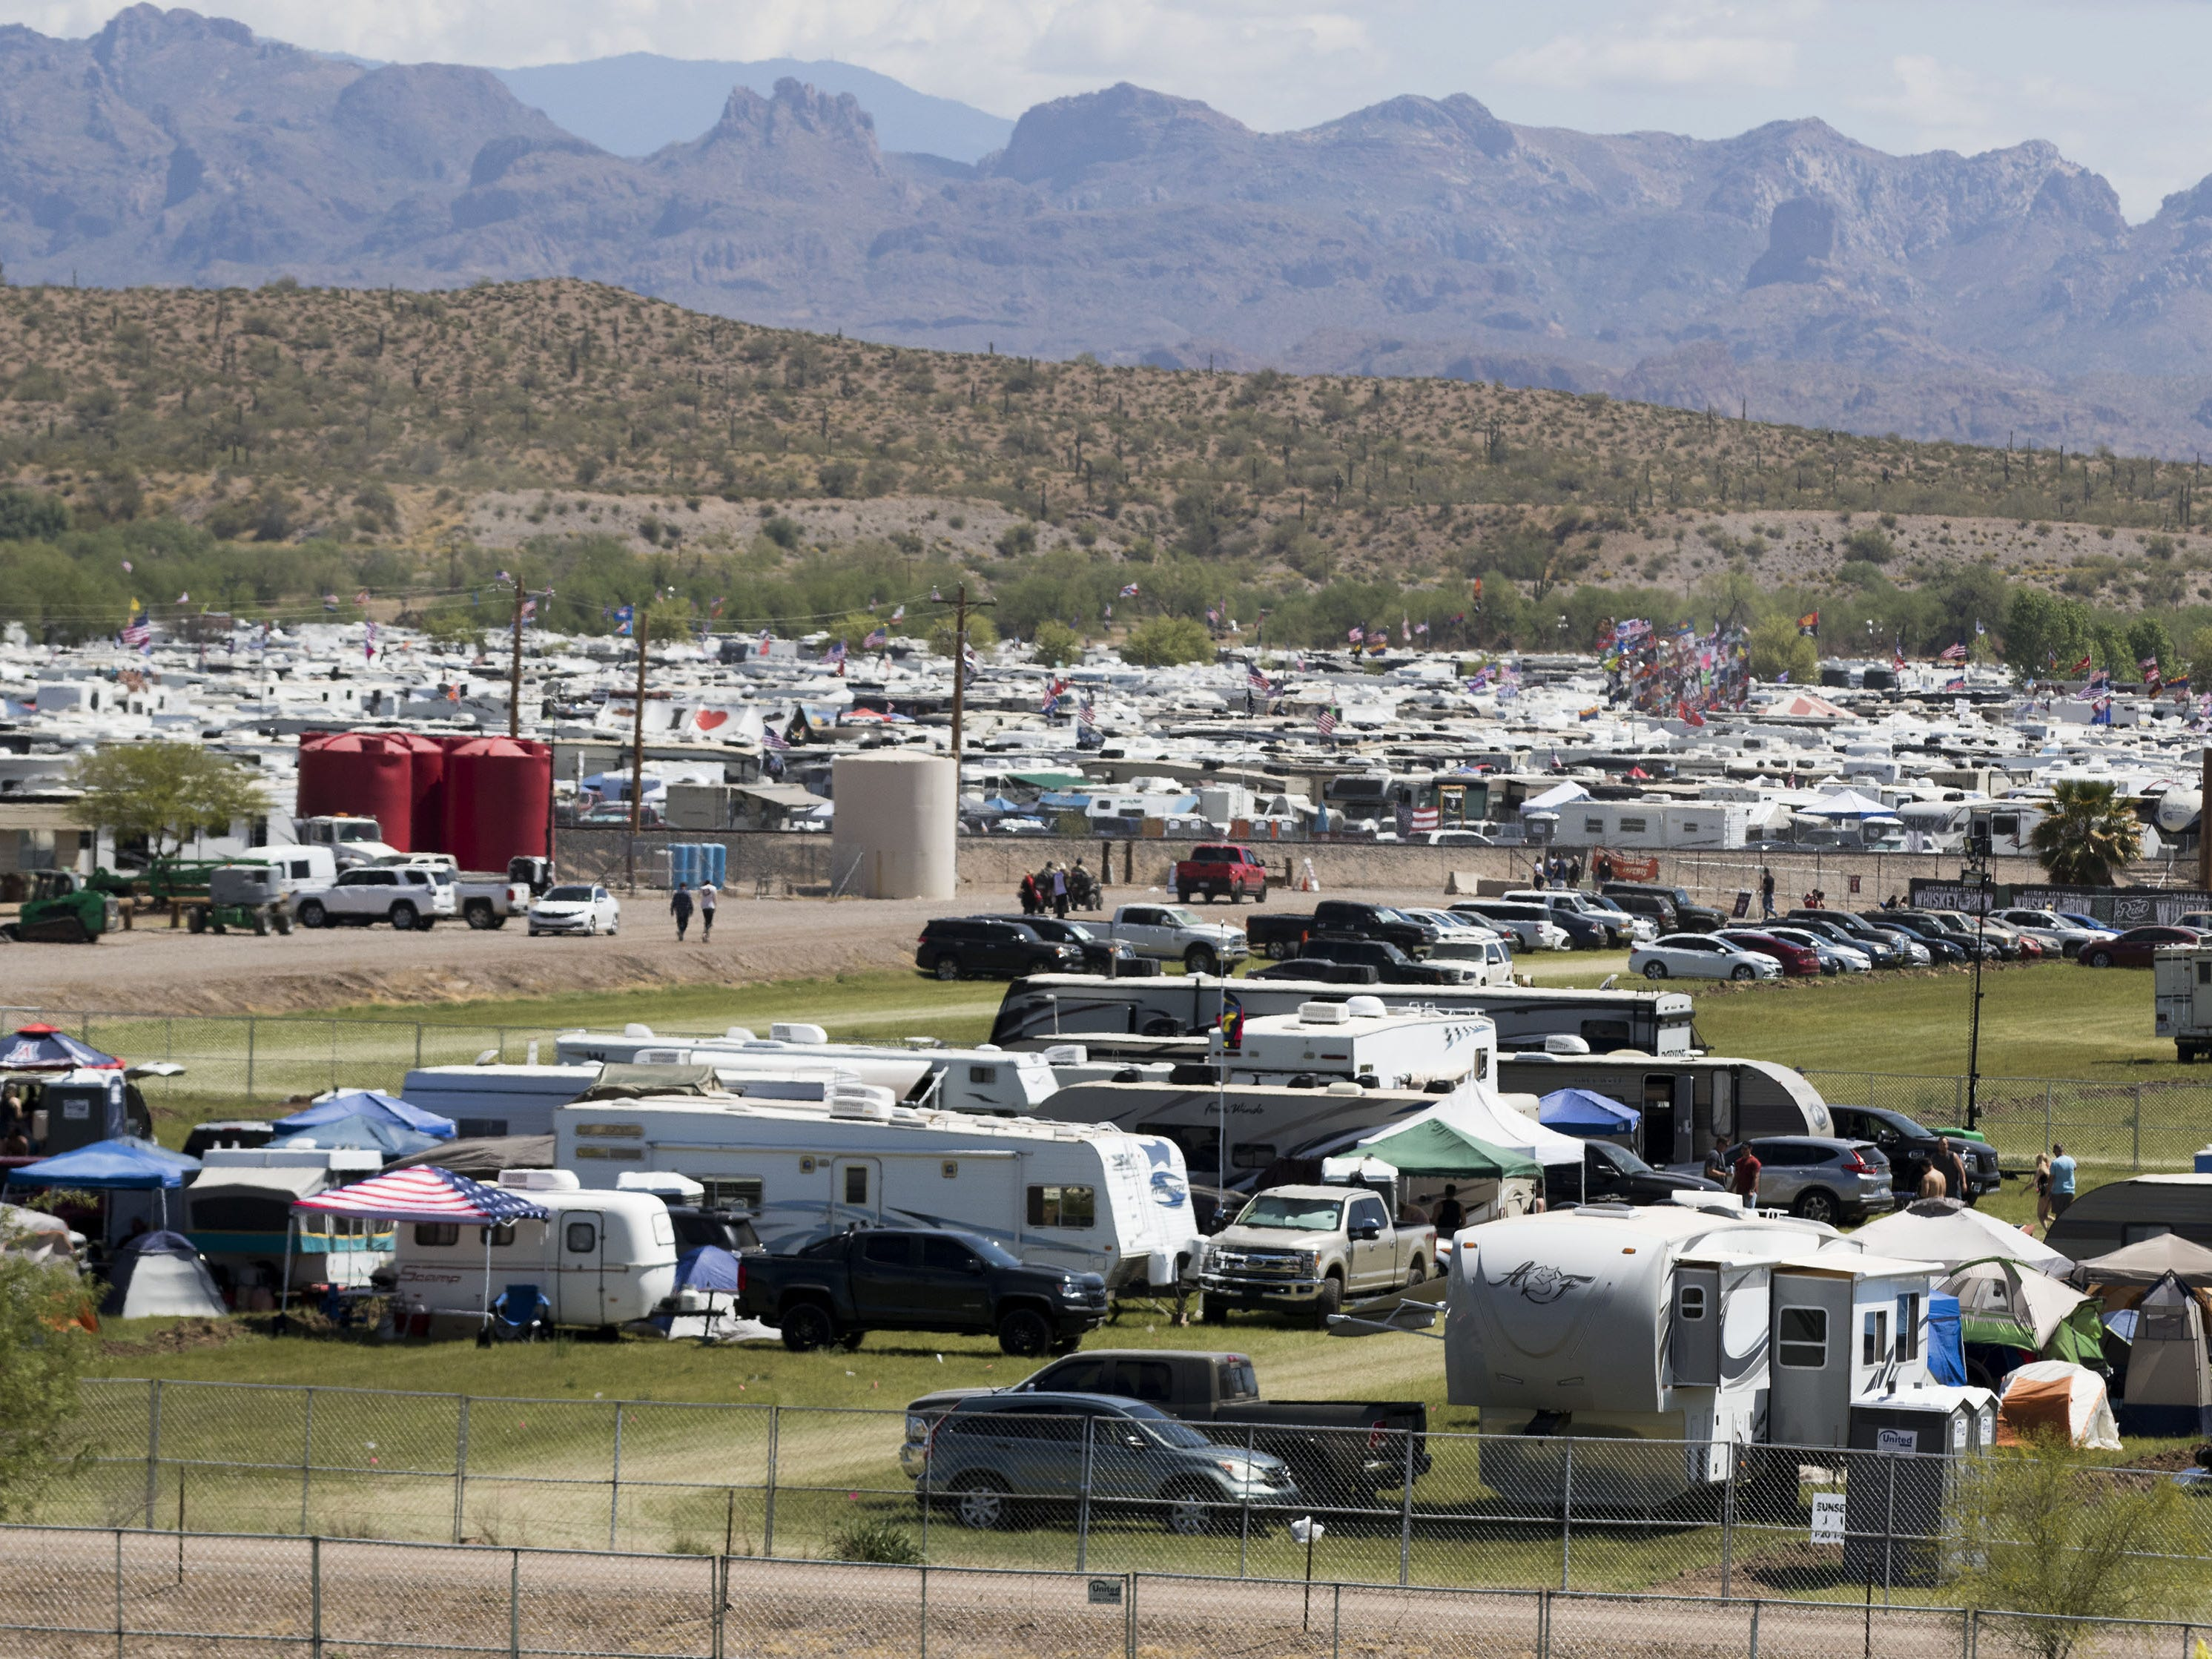 Extra camp grounds like Sunset East (foreground) house campers & trailers during Country Thunder Arizona Saturday, April 13, 2019, in Florence, Arizona.